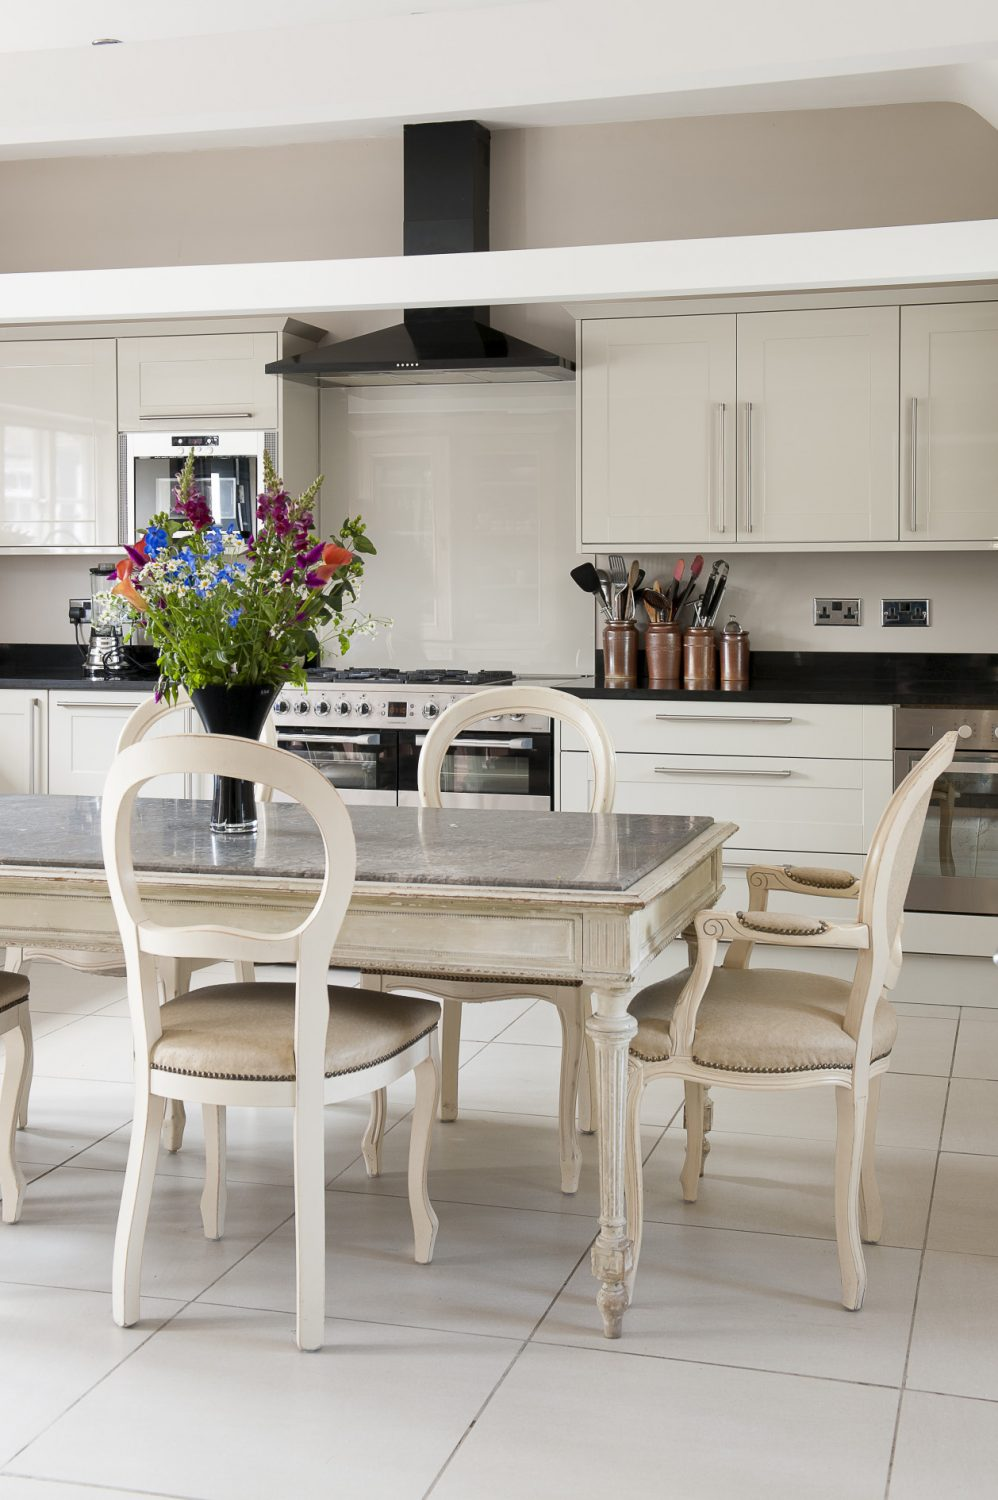 The spacious kitchen, which was once the pub kitchen, has been completely stripped out and refitted with a chic, grey Howdens kitchen and a distressed, marble-topped table